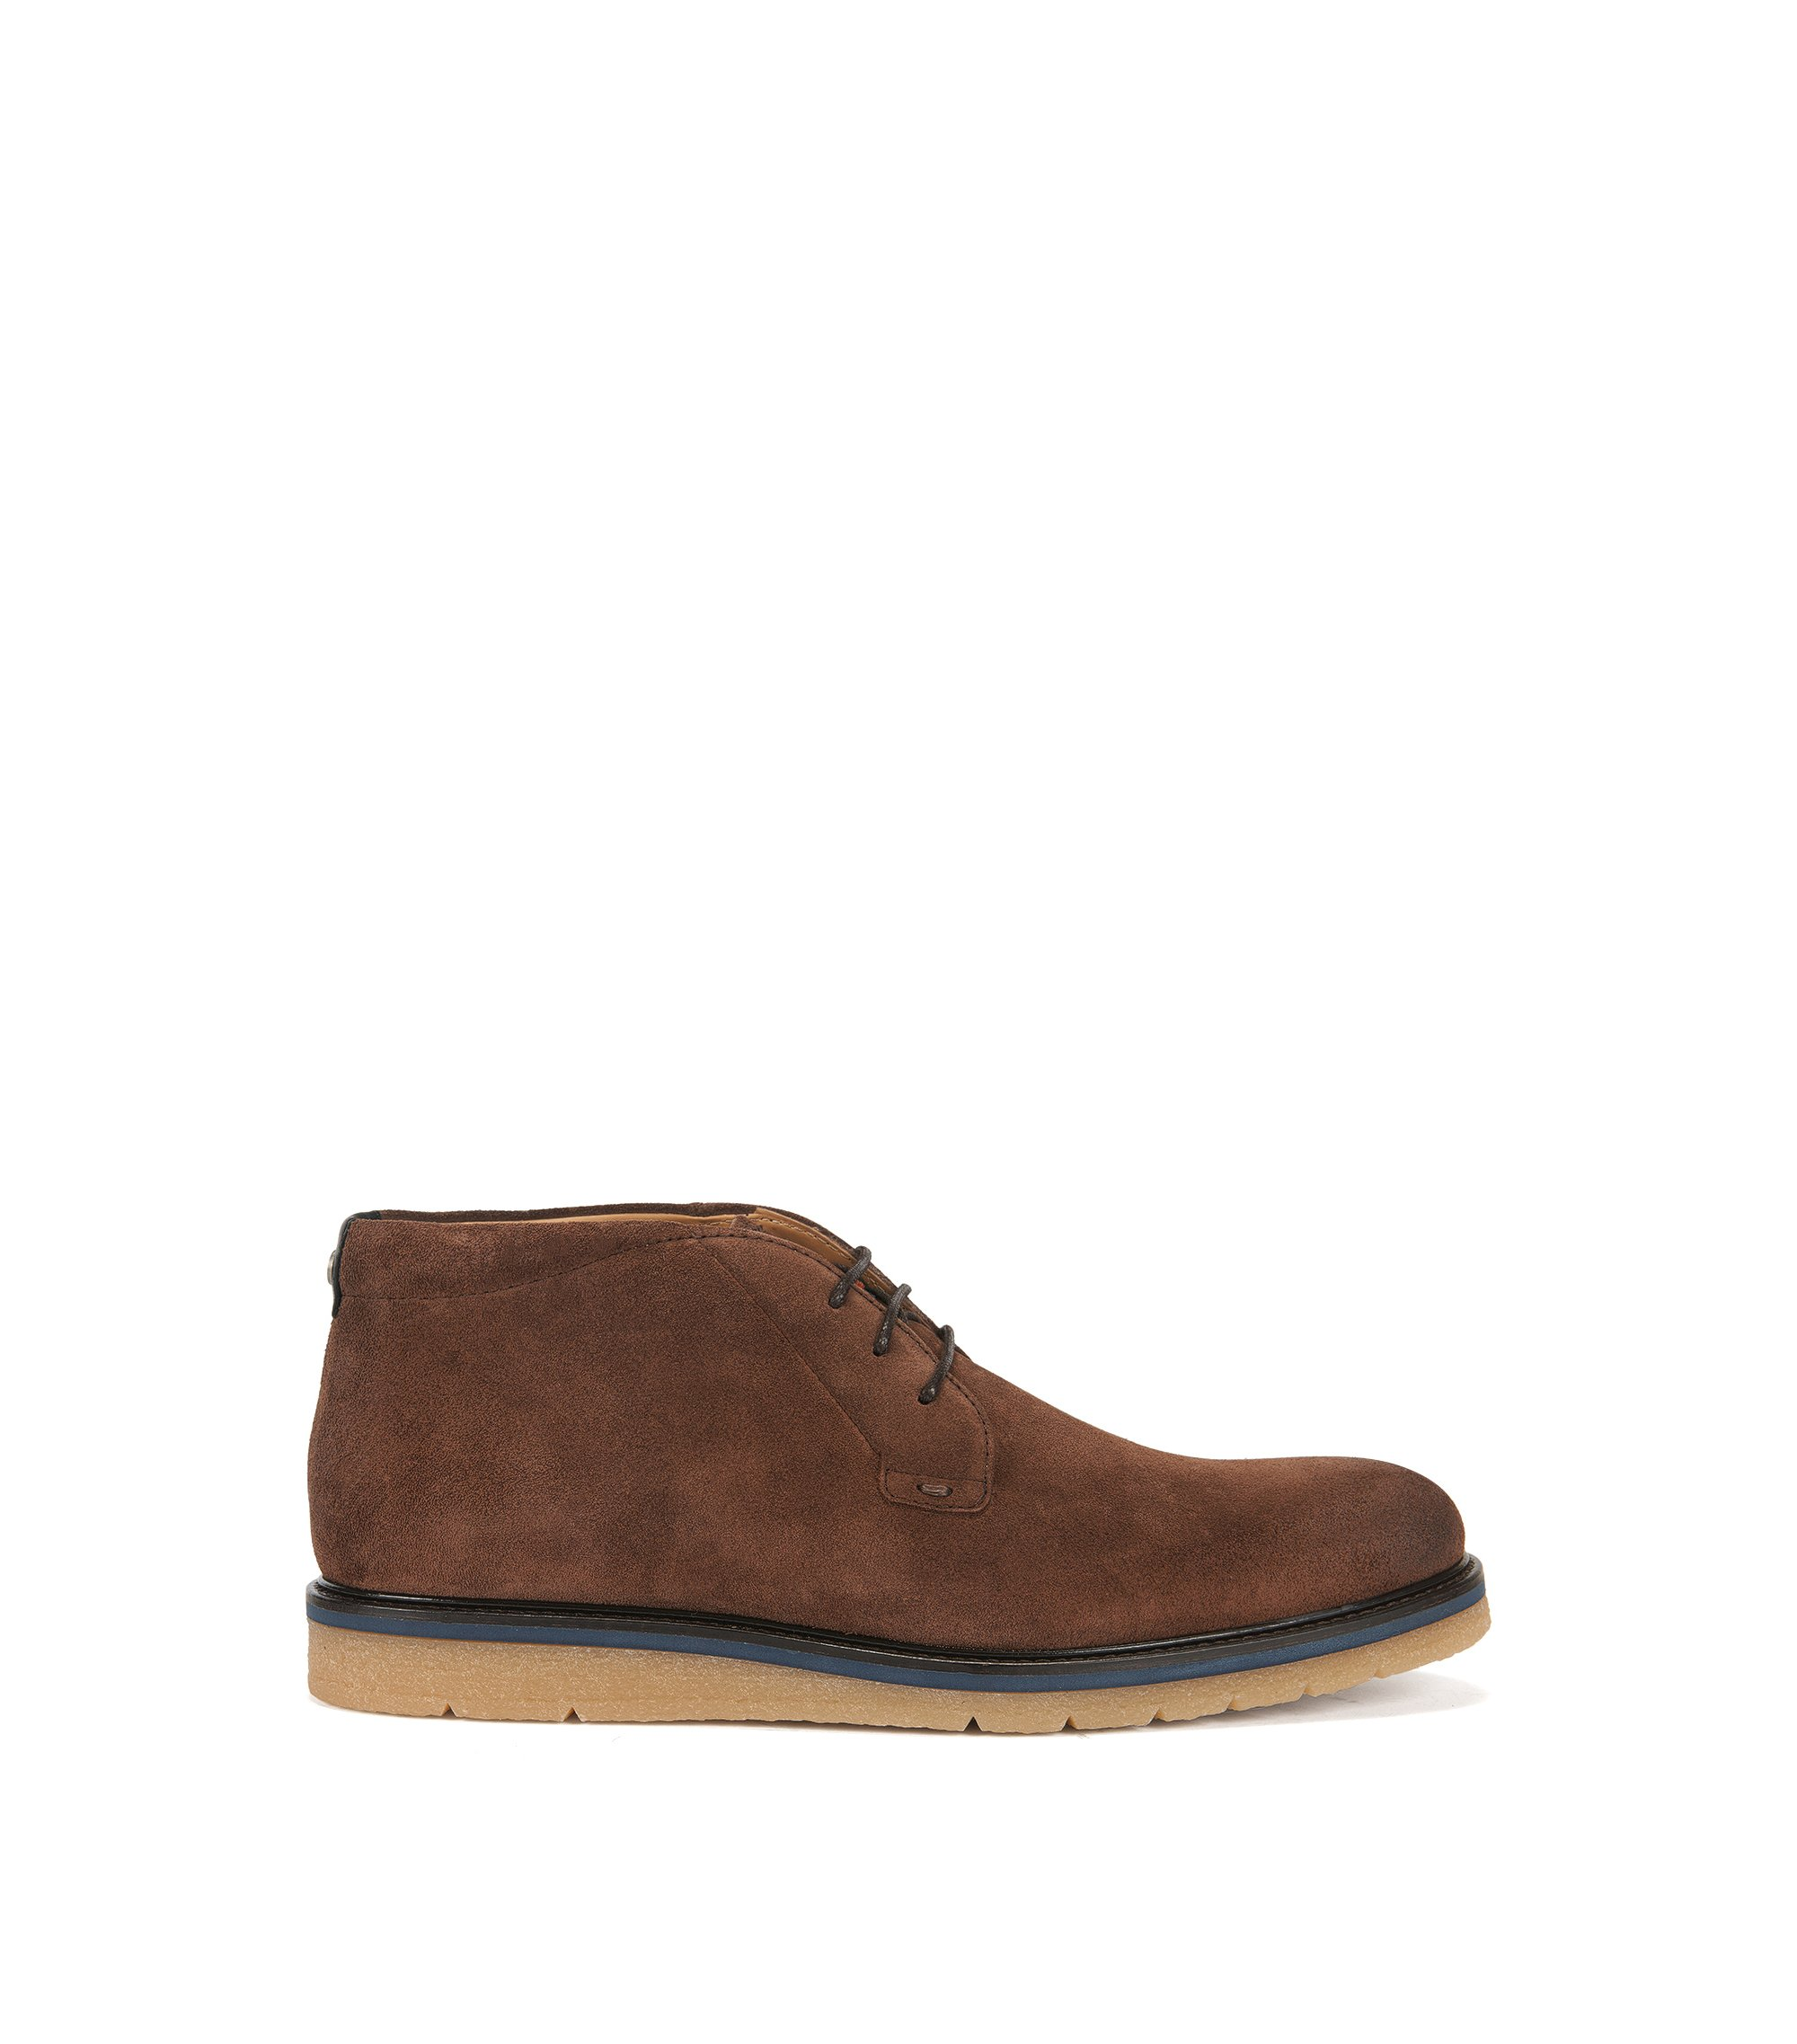 Suede Desert Boot | Tune Desb SD, Light Brown